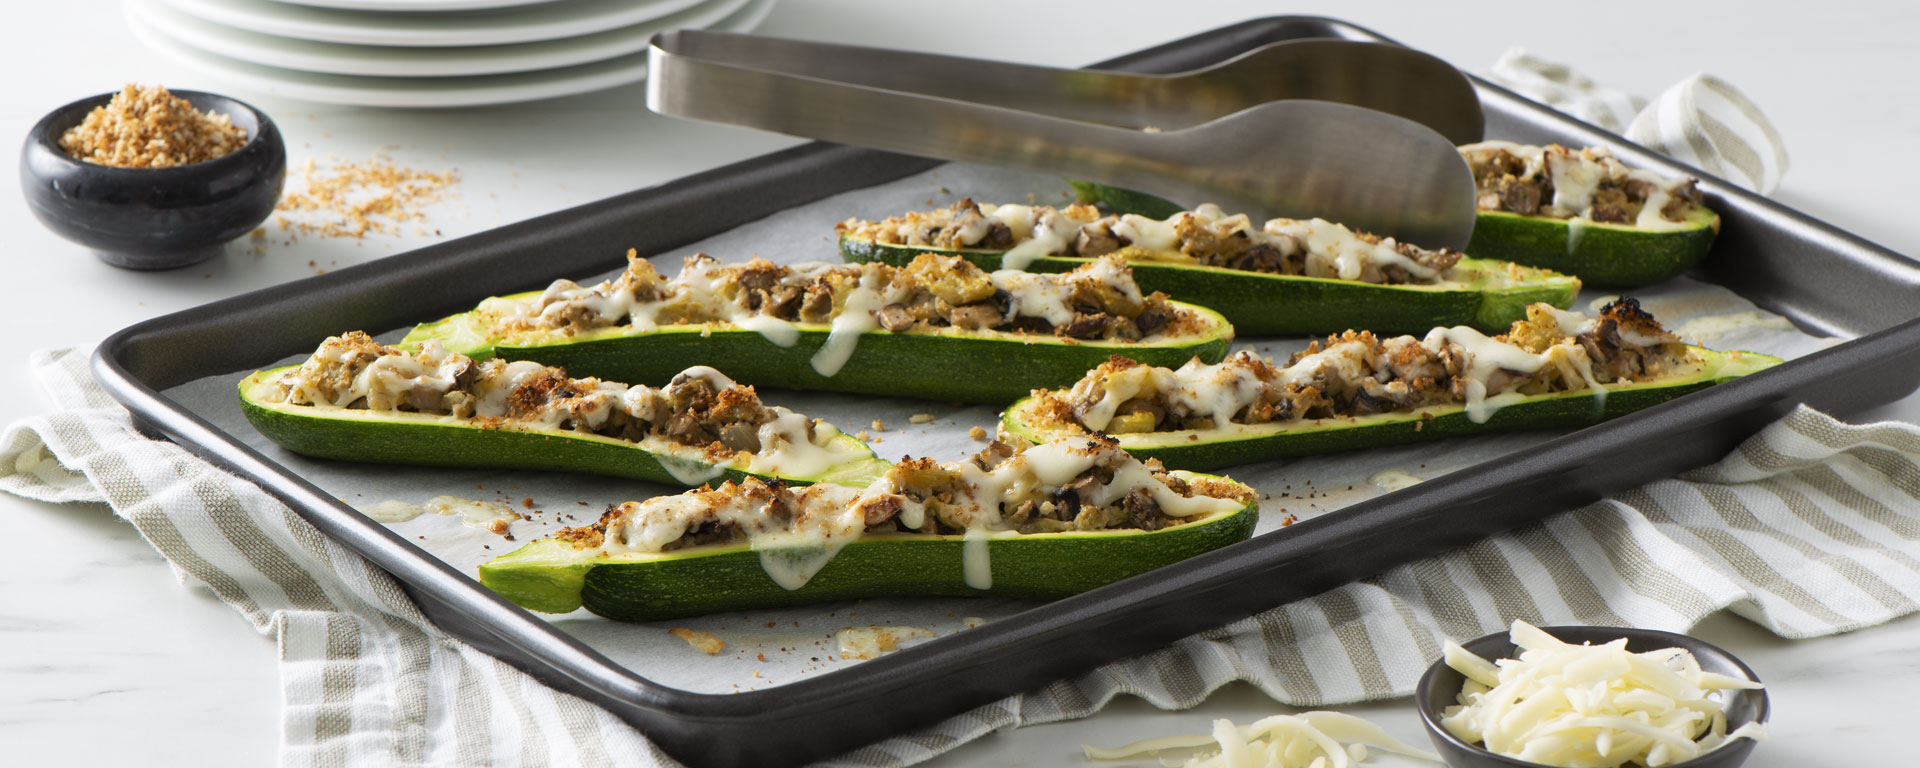 Photo for - Mushroom Stuffed Zucchini